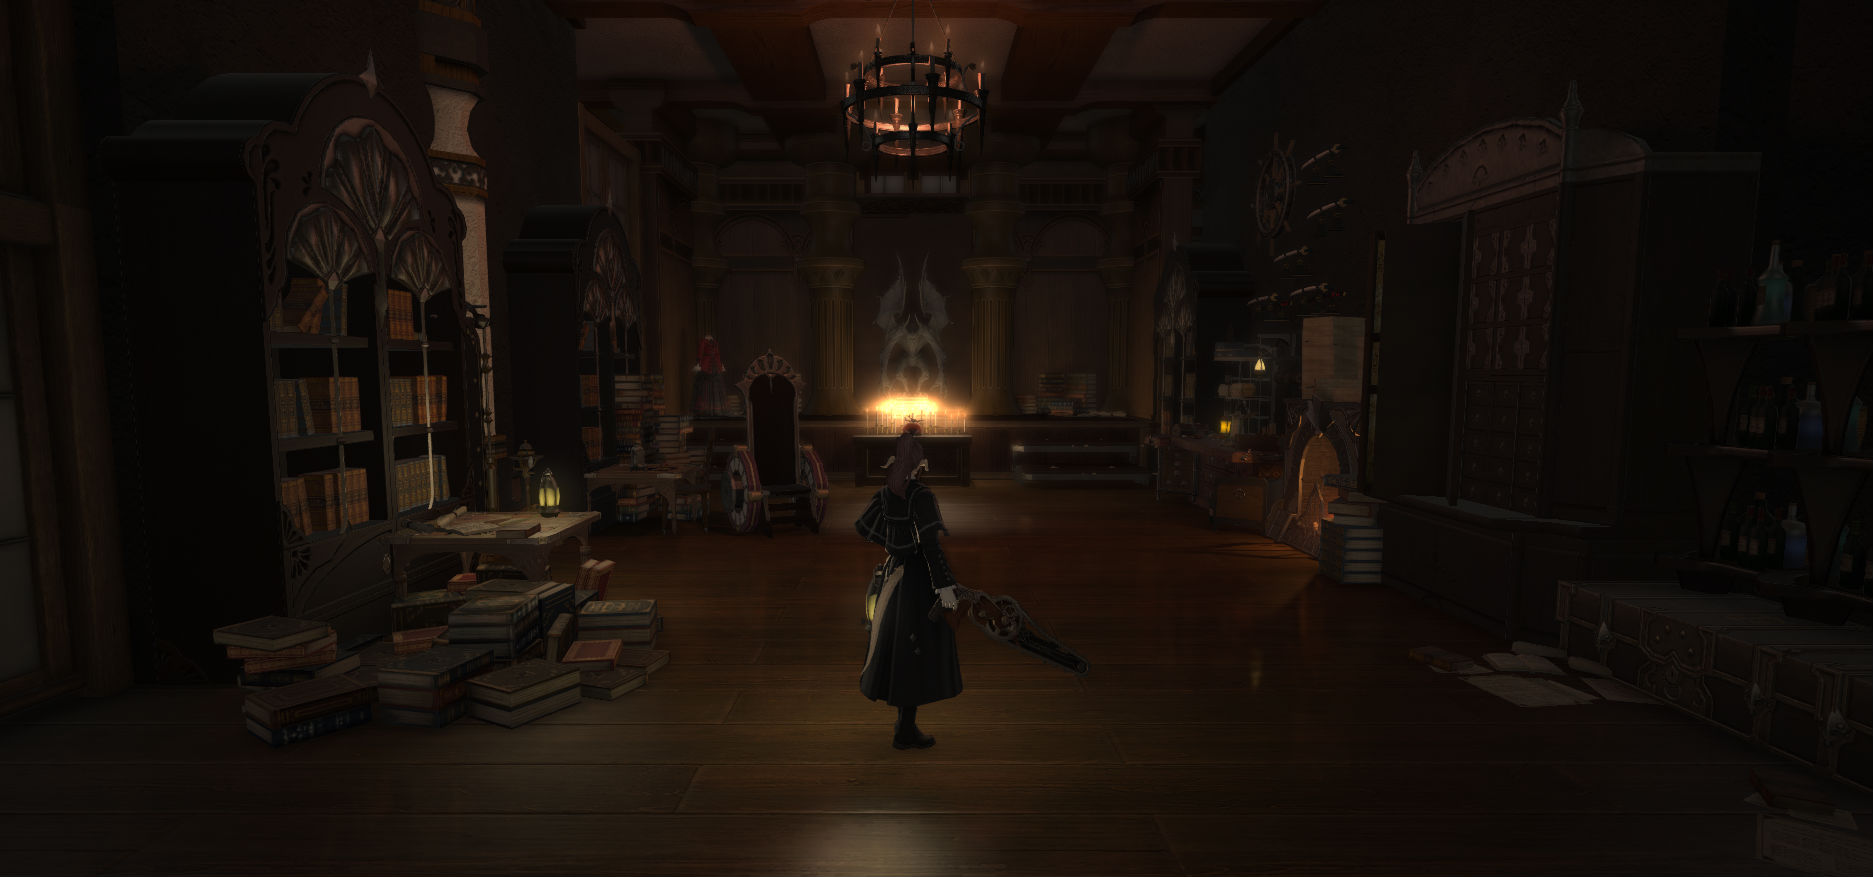 Someone recreated the Bloodborne Hunter's Workshop in Final